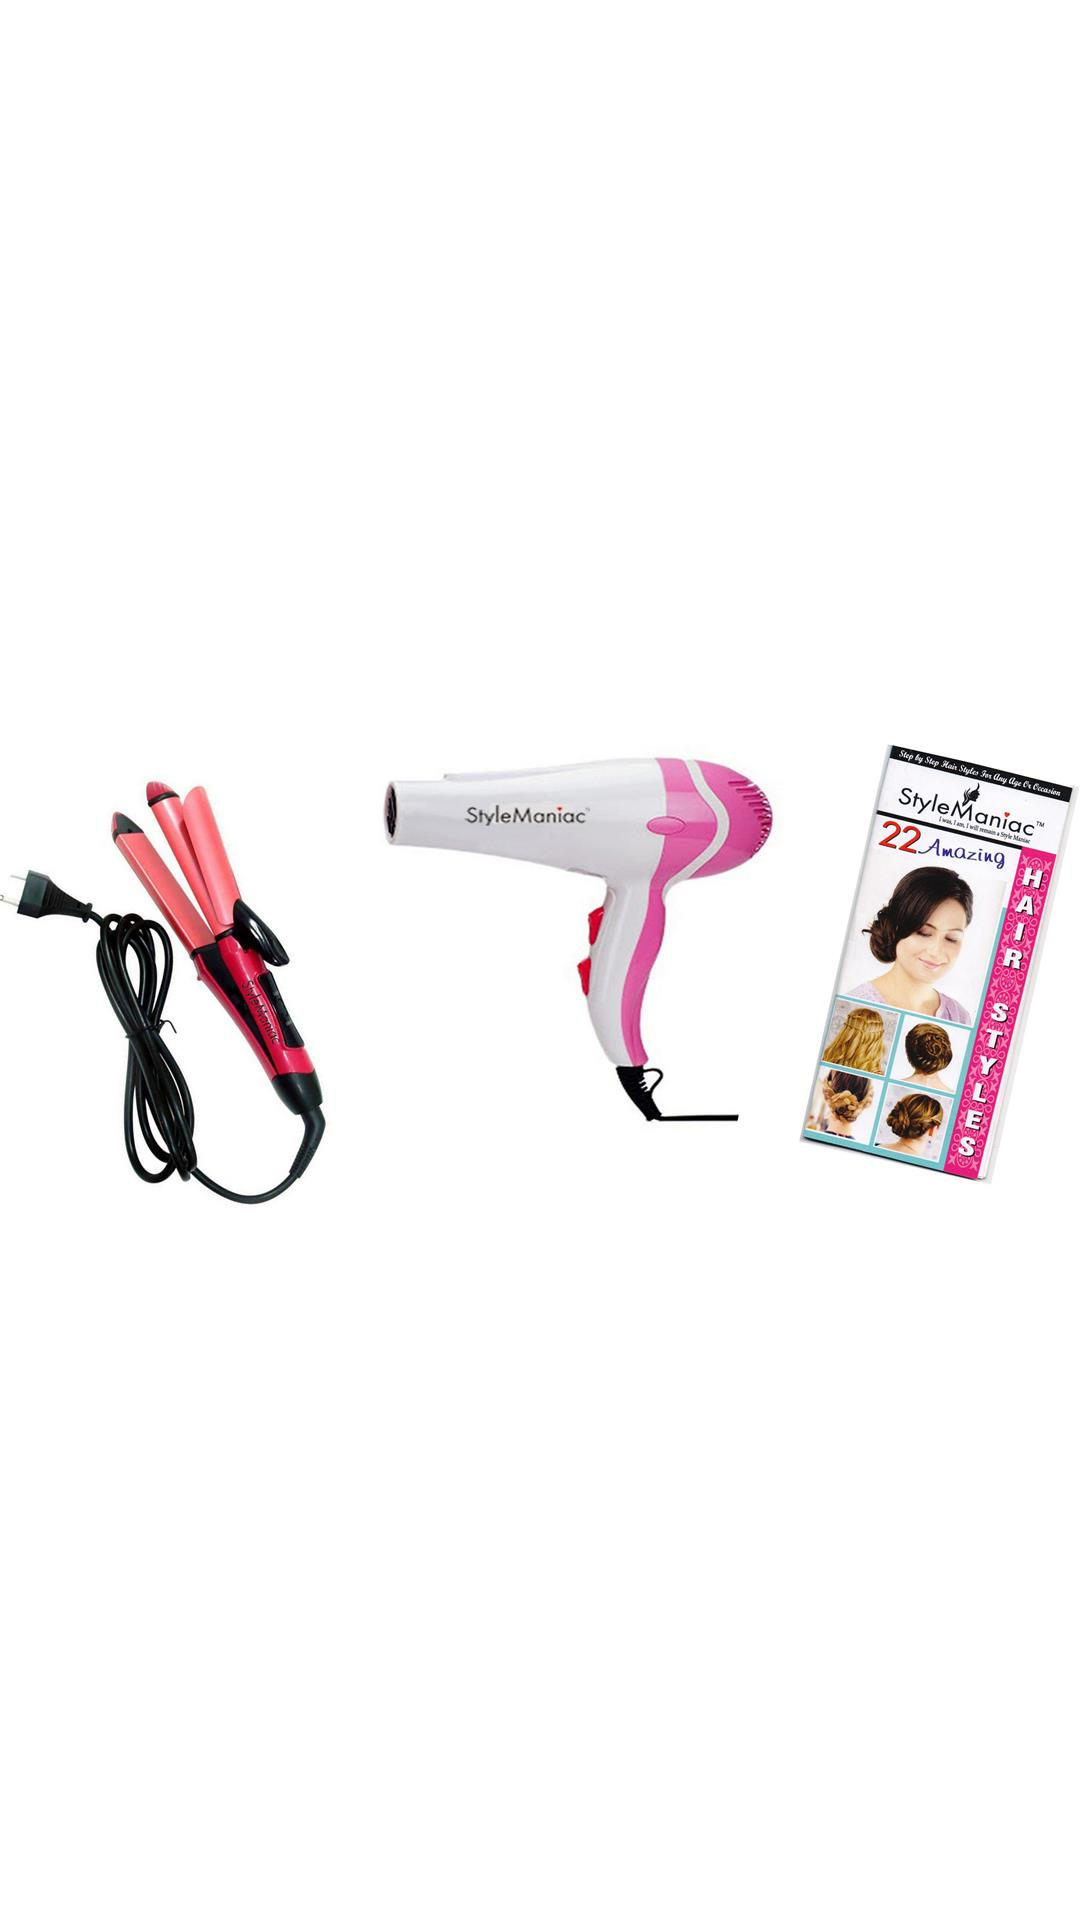 Style Maniac ombo of  2 in 1 Hair Straightener cum Curler and Hot & Hair dryer and a ultimate hair style booklet FREE